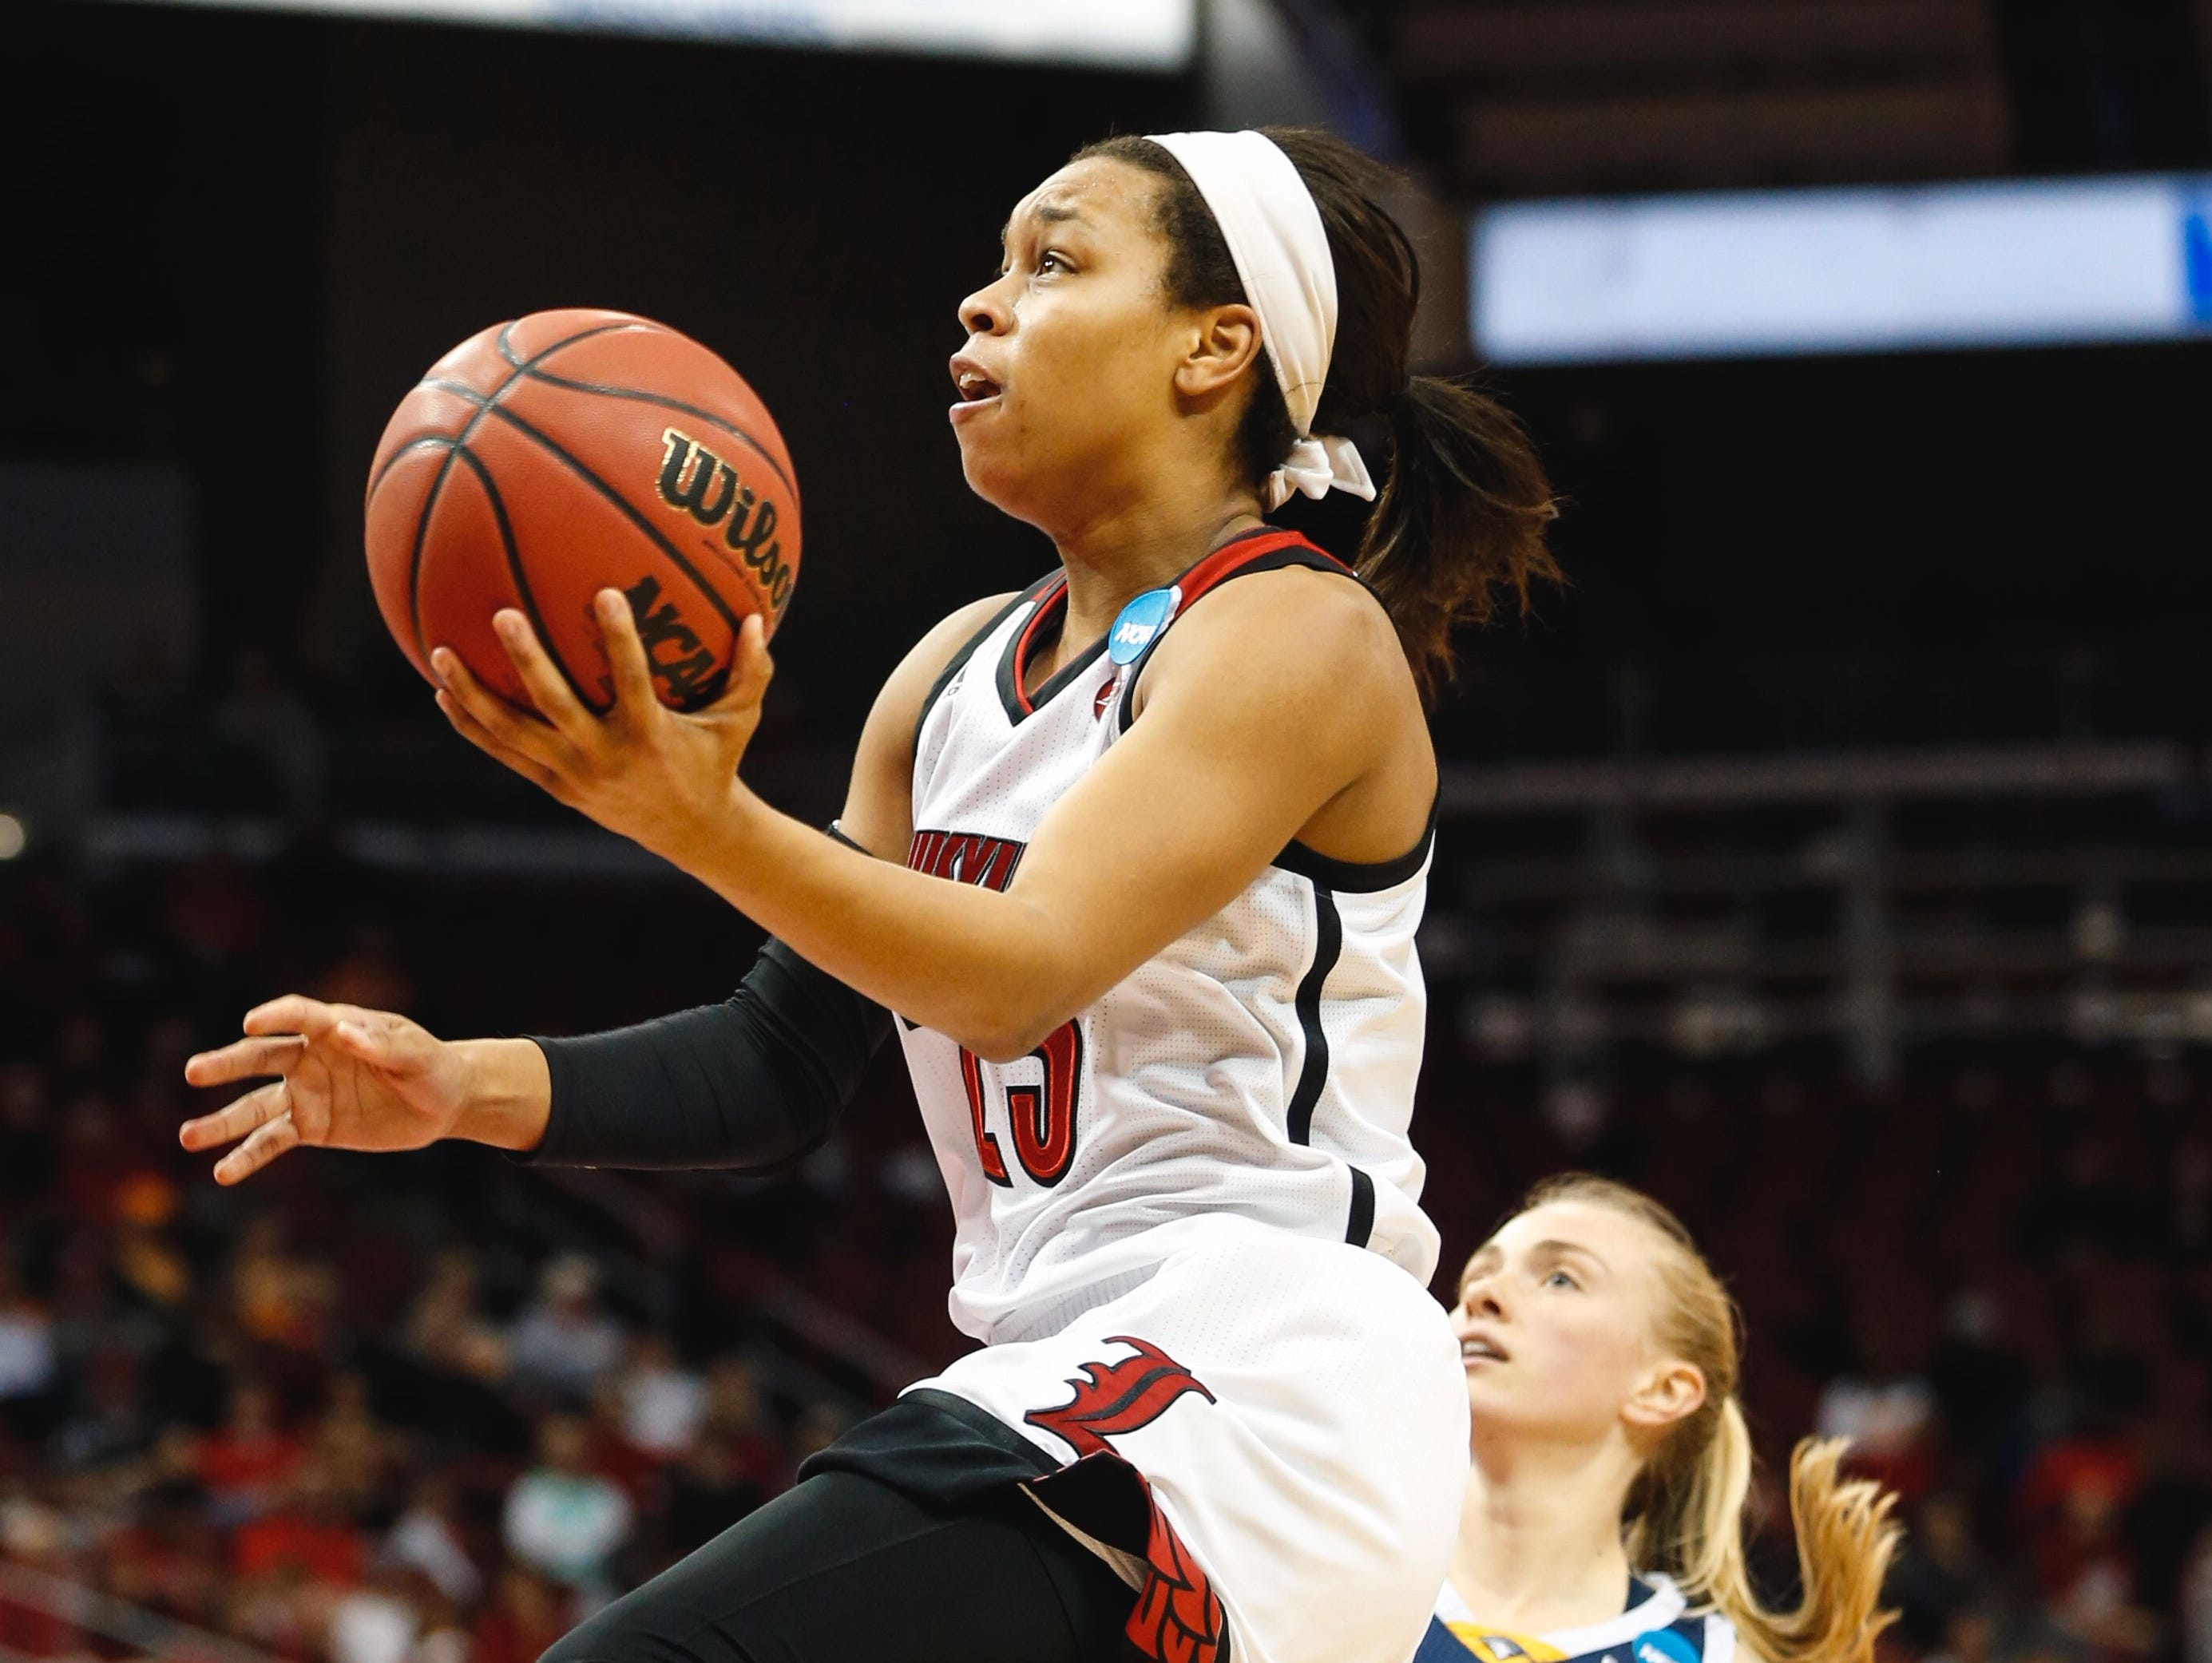 Louisville's Asia Durr drives past Chattanooga's Lakelyn Bouldin to score two of her 27 points during Saturday's game in Louisville.